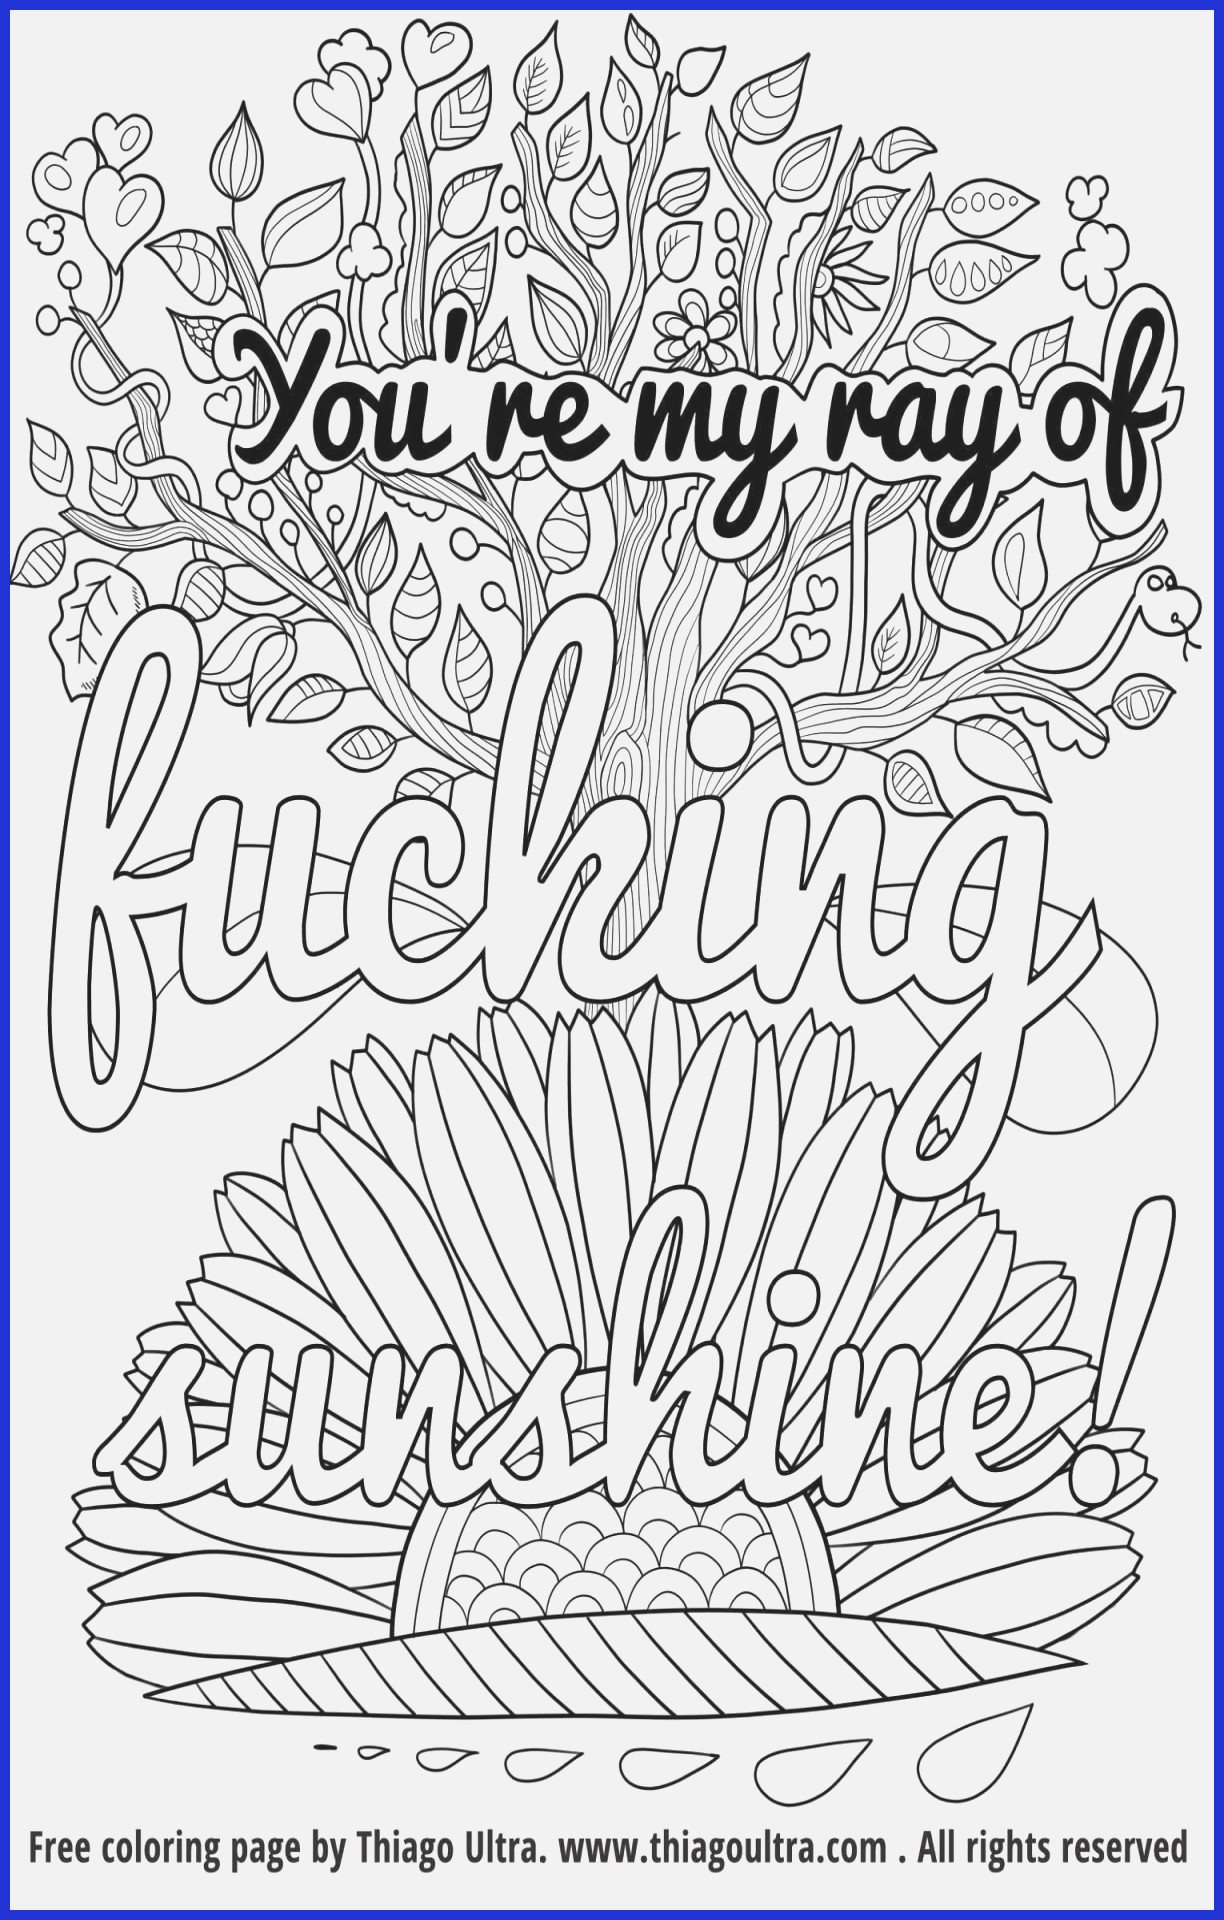 Cuss Words Coloring Pages  Collection 18j - To print for your project